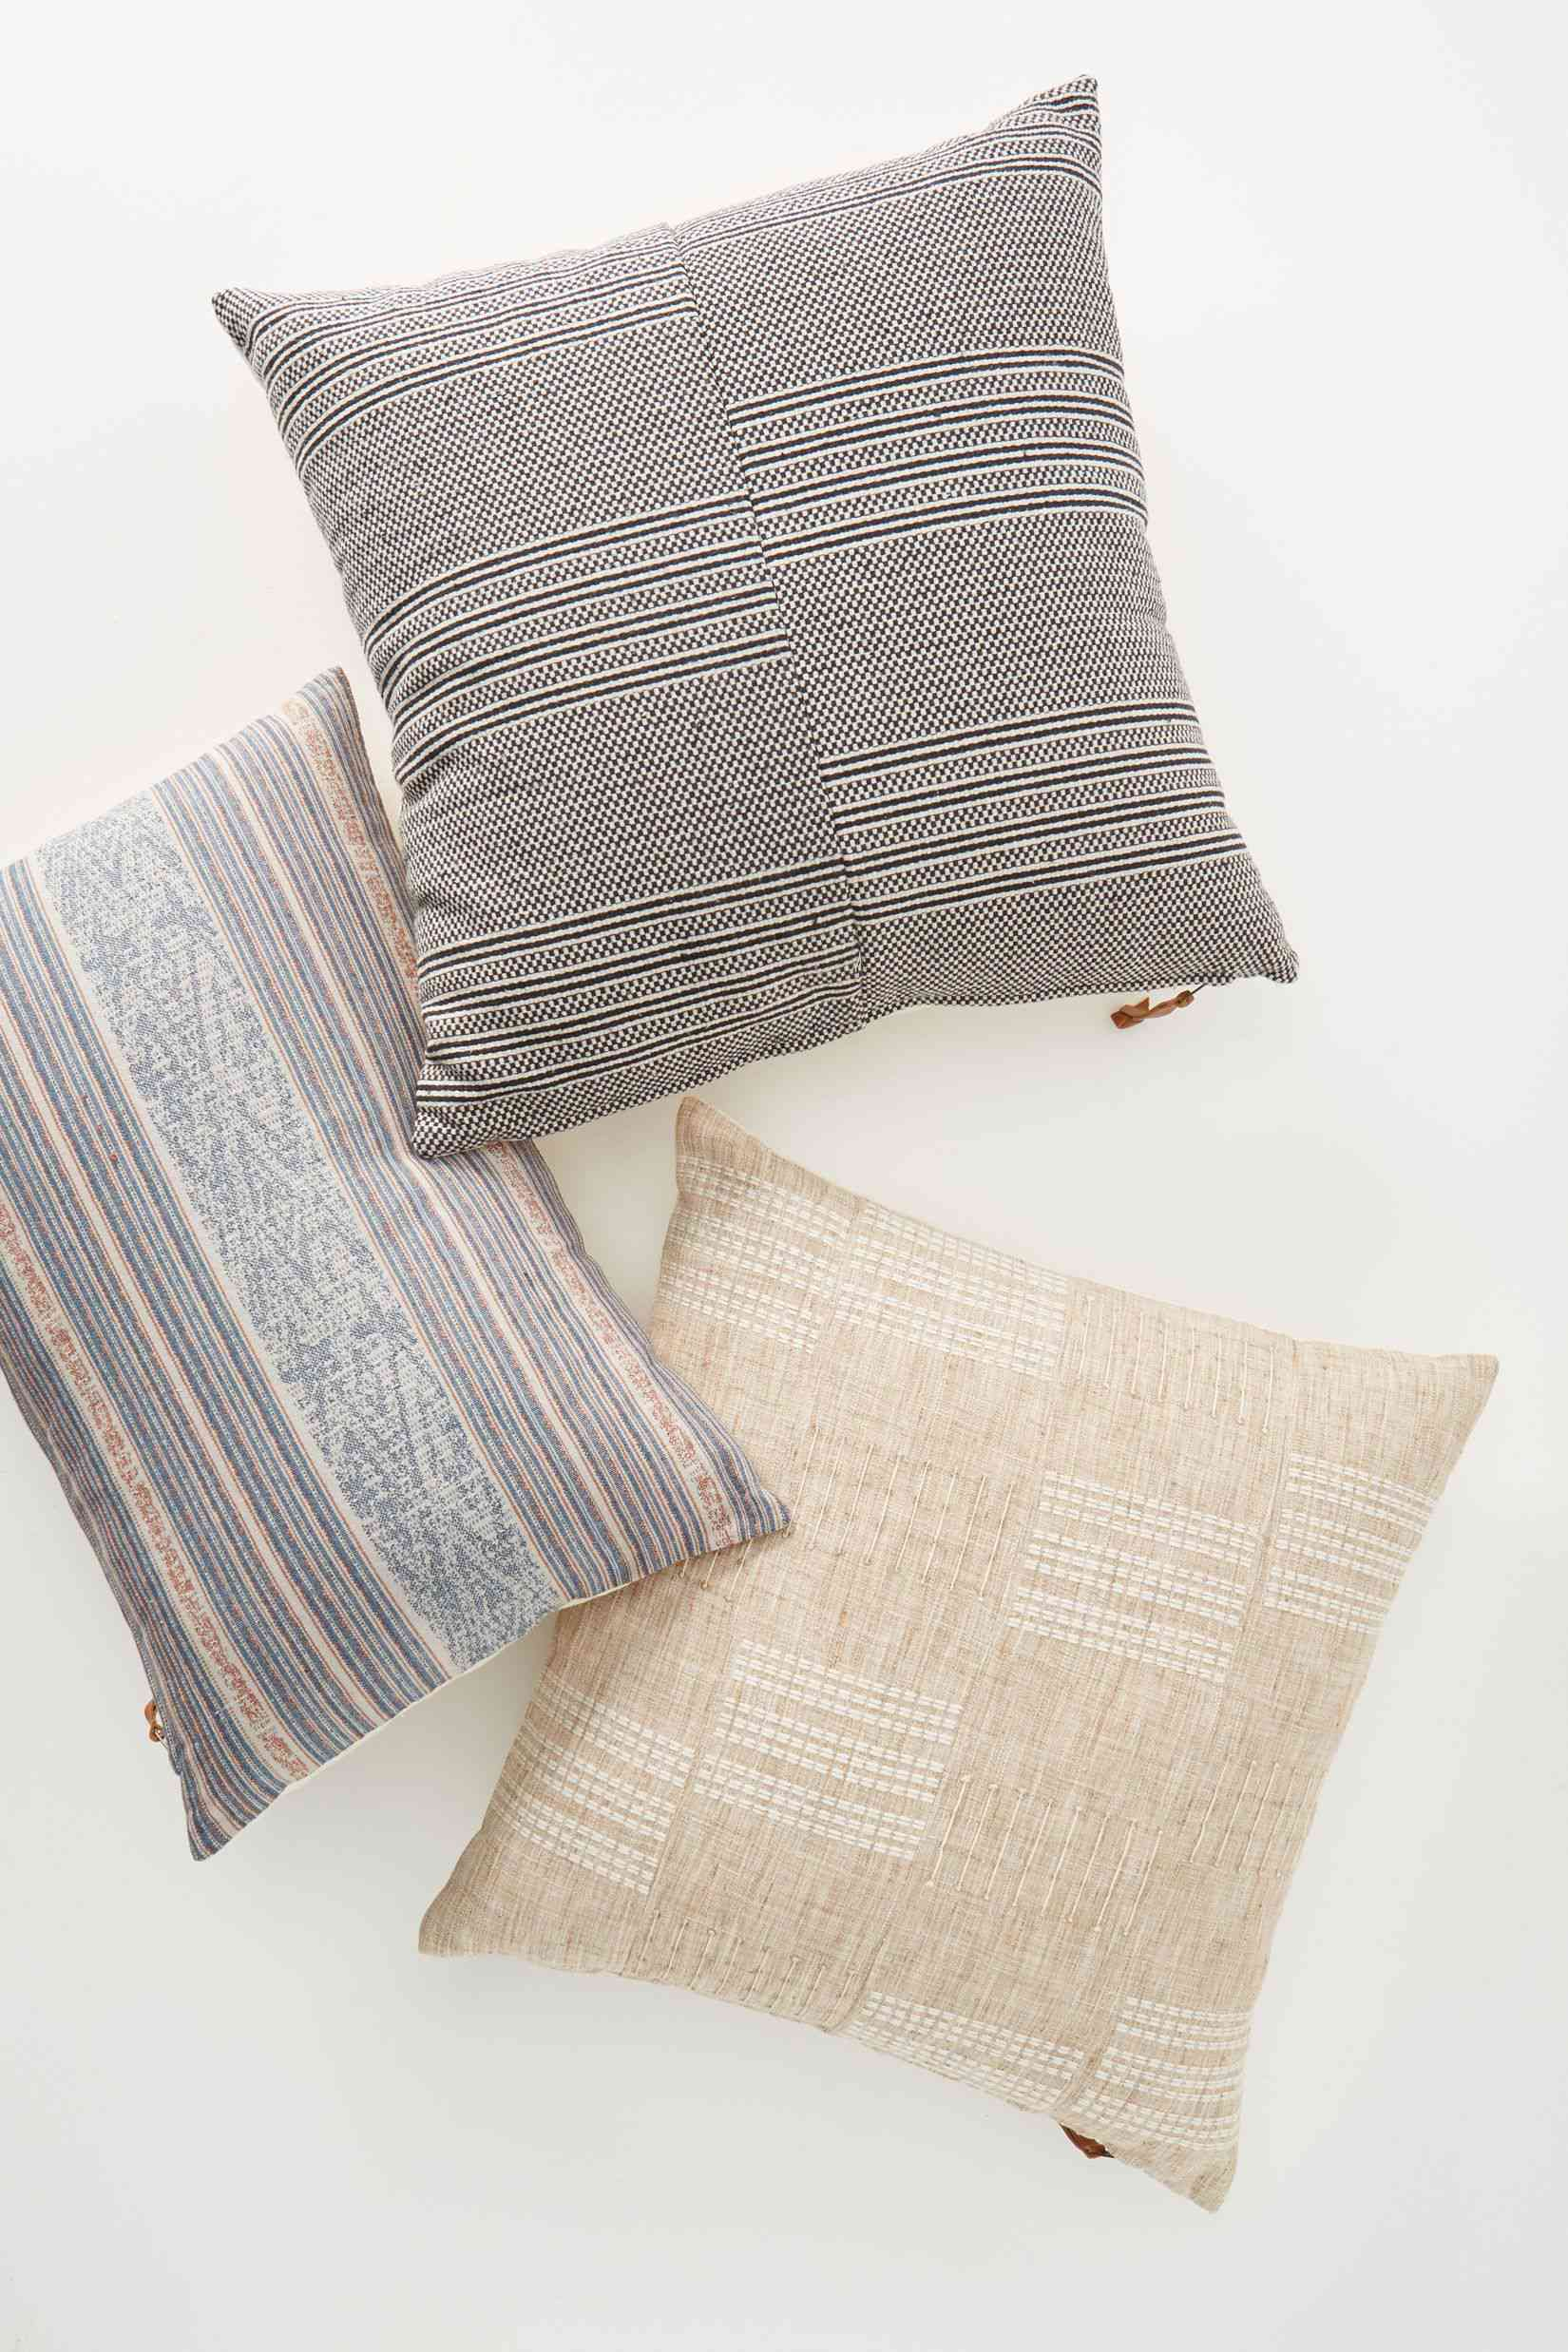 Amber Lewis For Anthropologie Woven Ferndale Pillow